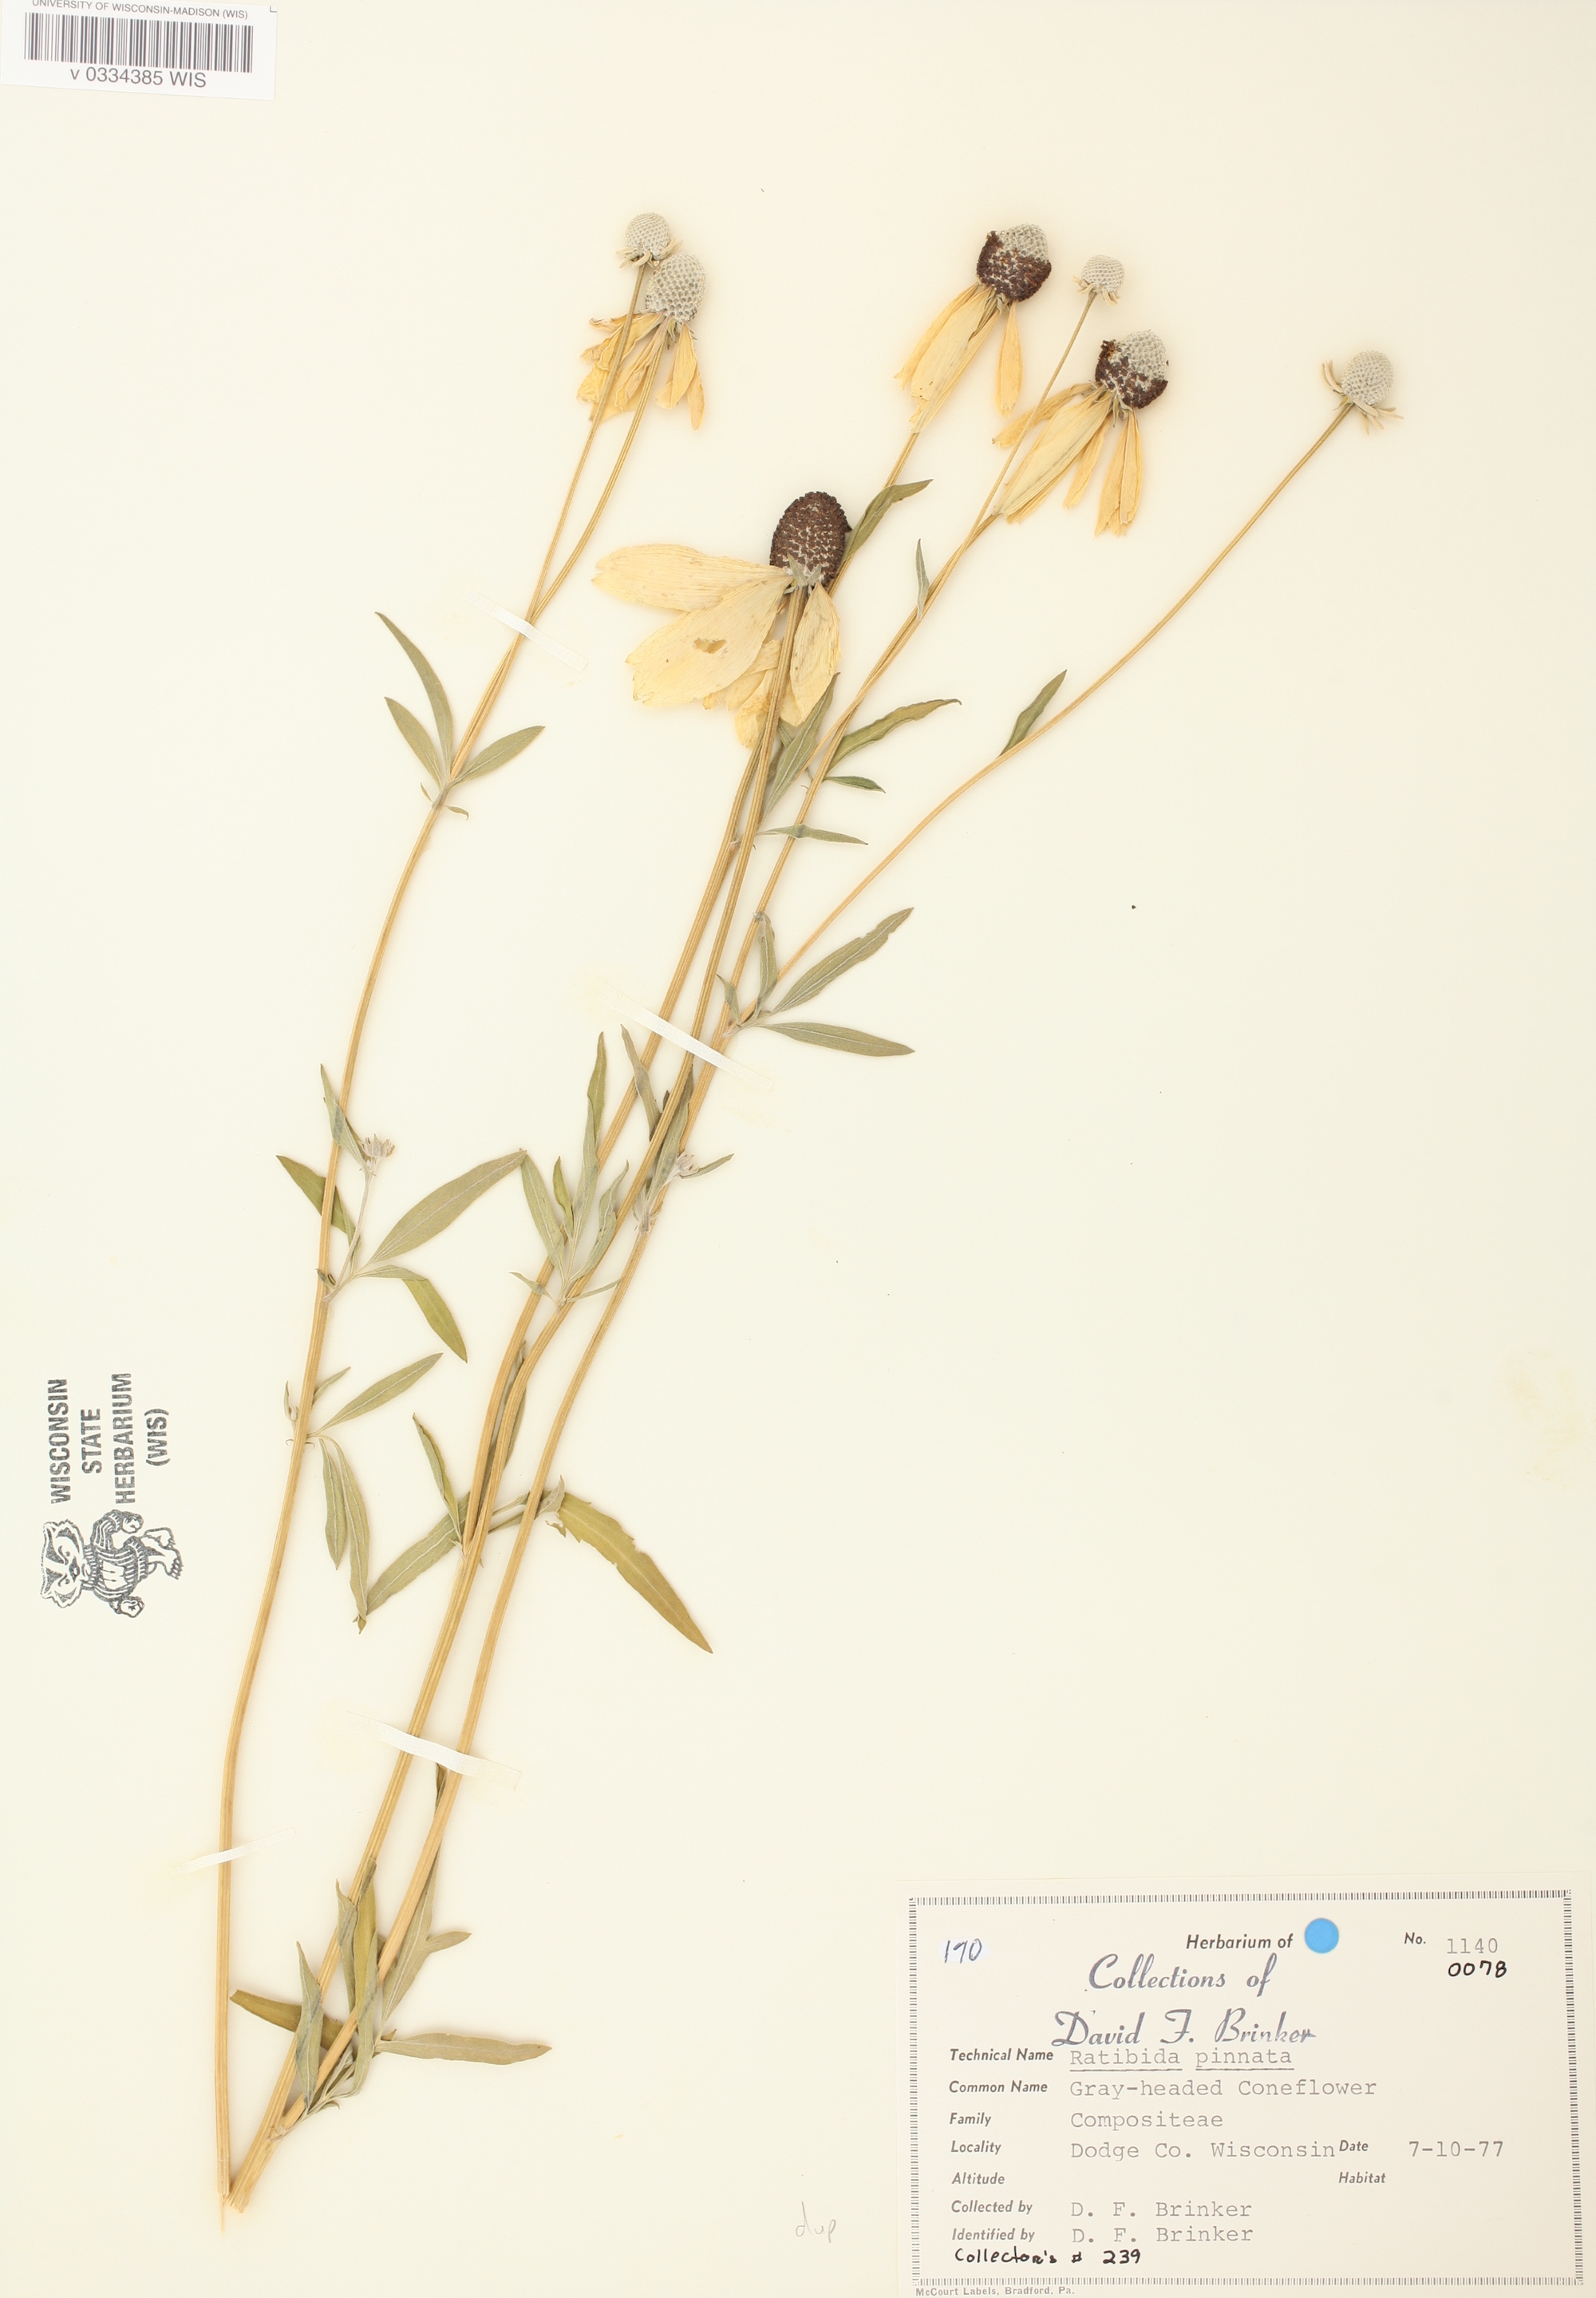 Gray-headed coneflower specimen collected in Dodge County, Wisconsin on July 10, 1977.